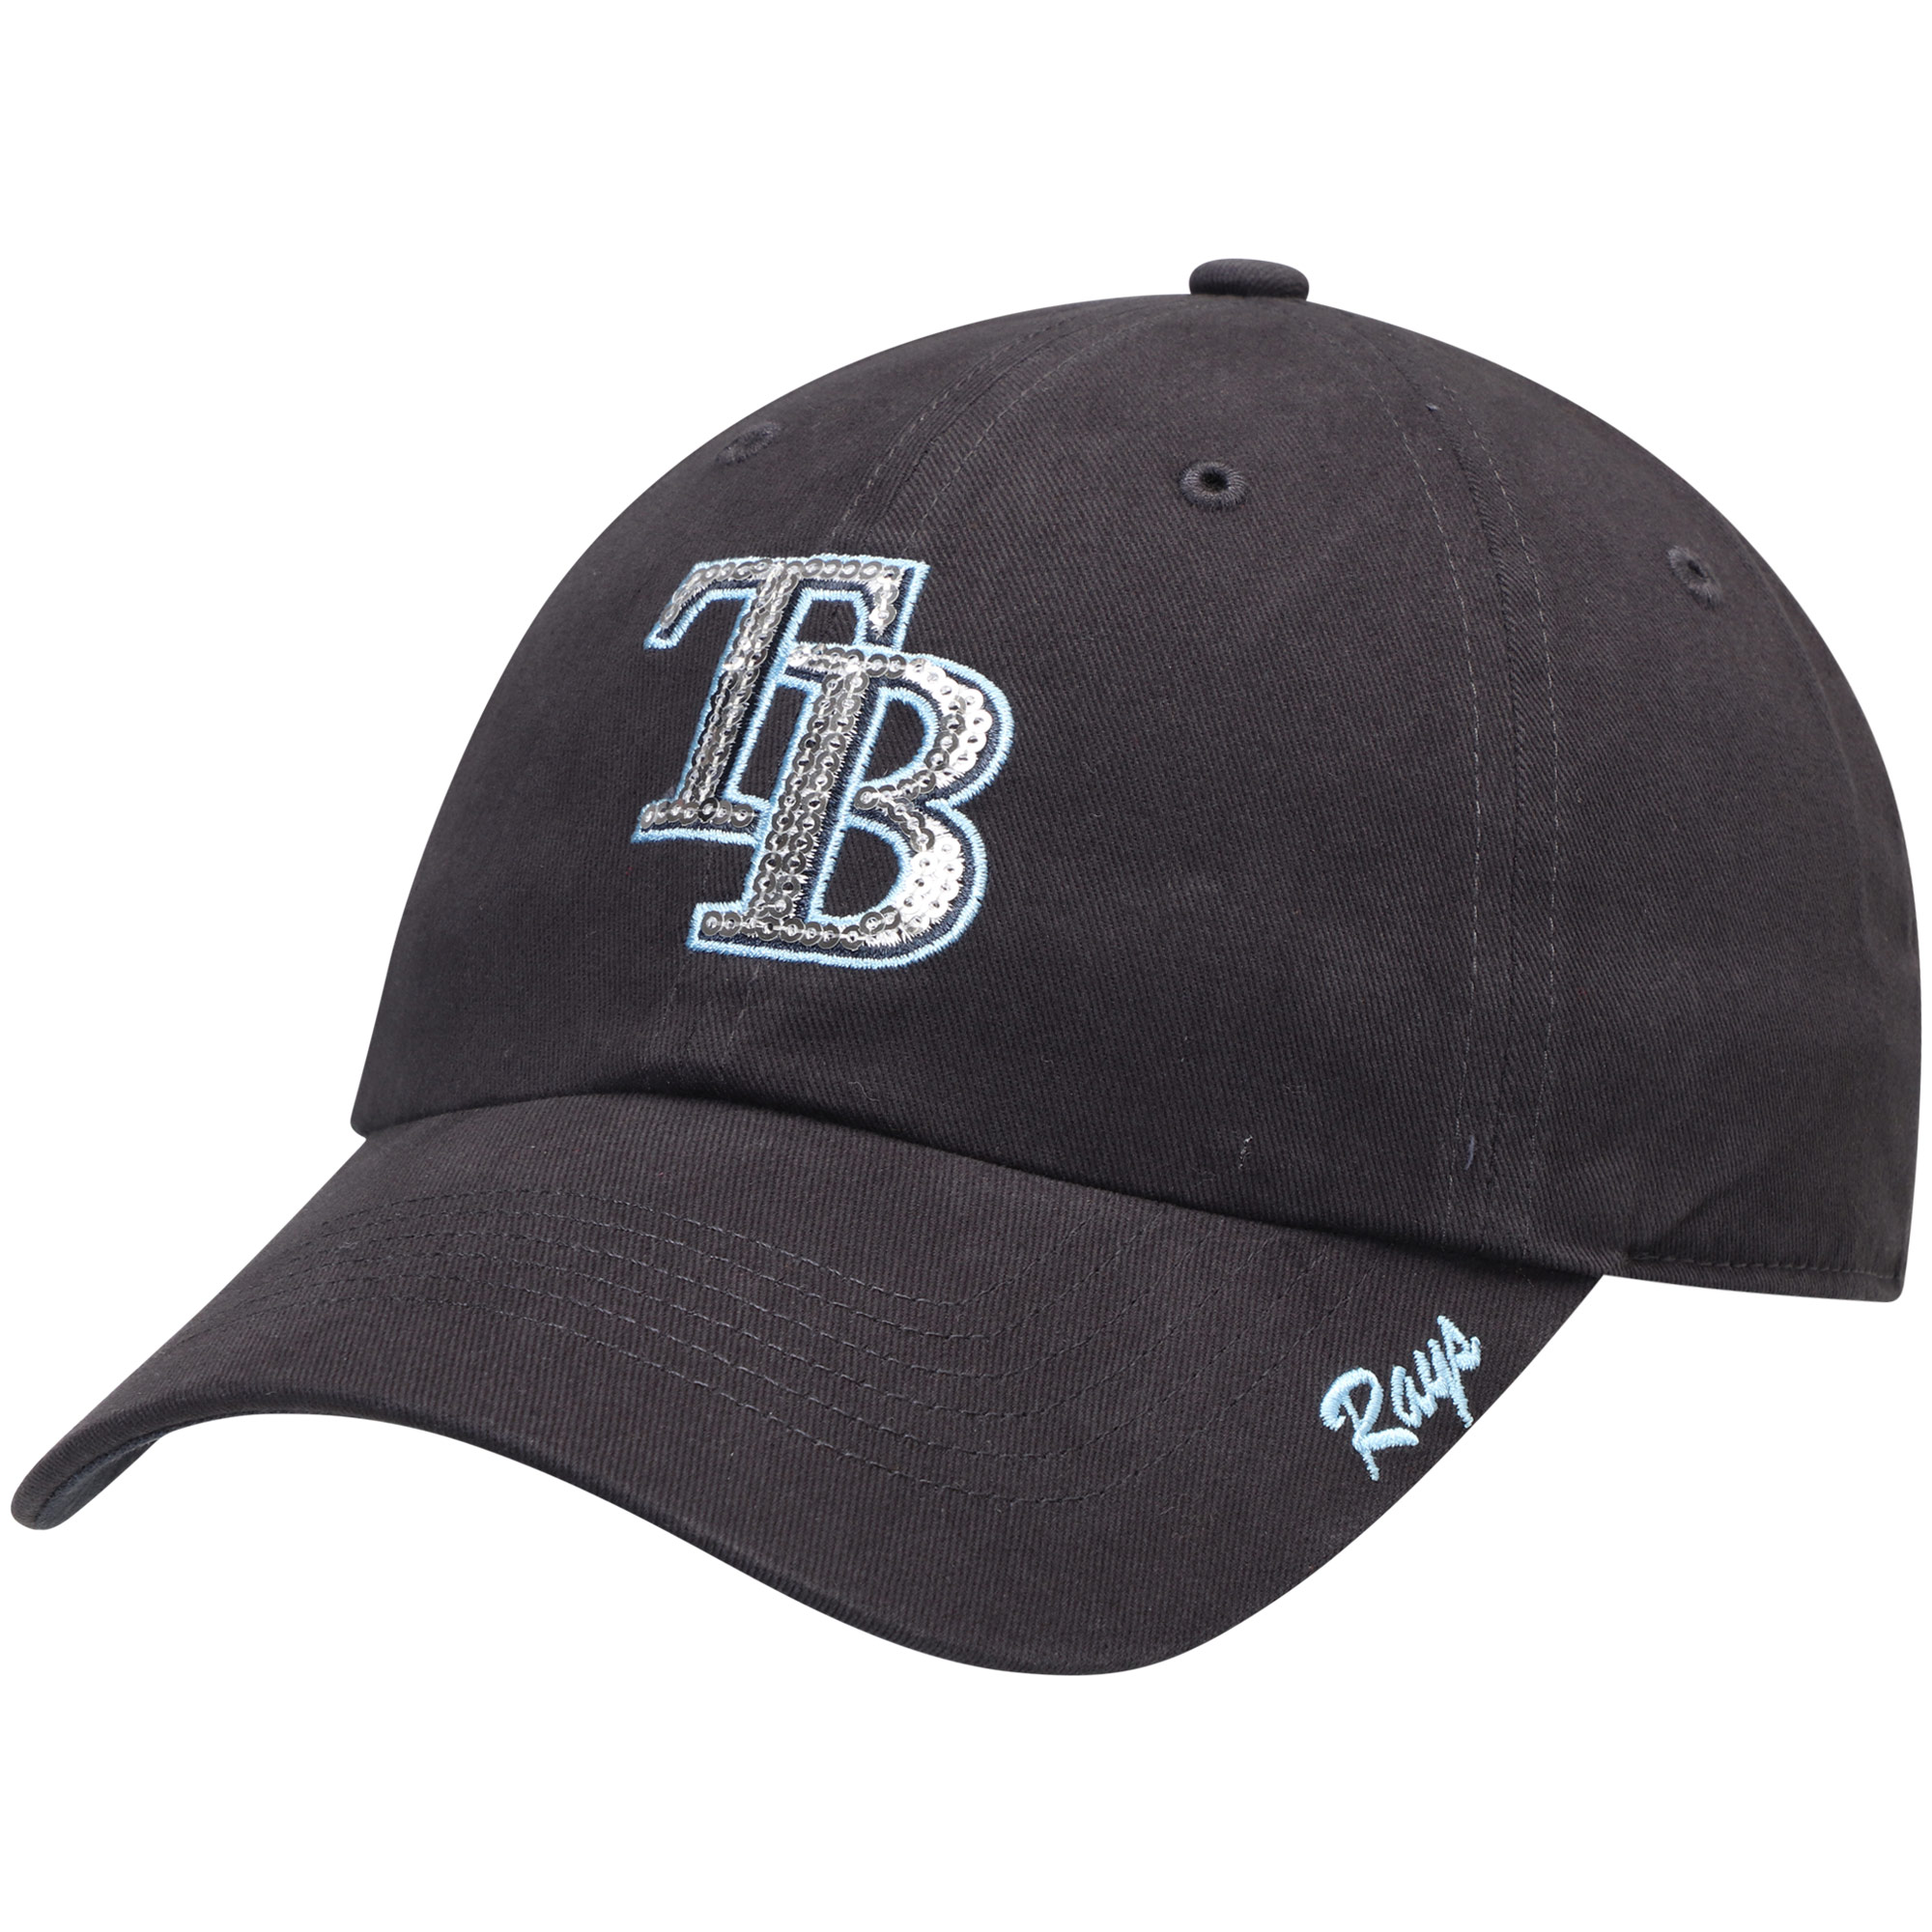 Women's Fan Favorite Navy Tampa Bay Rays Sparkle Adjustable Hat - OSFA